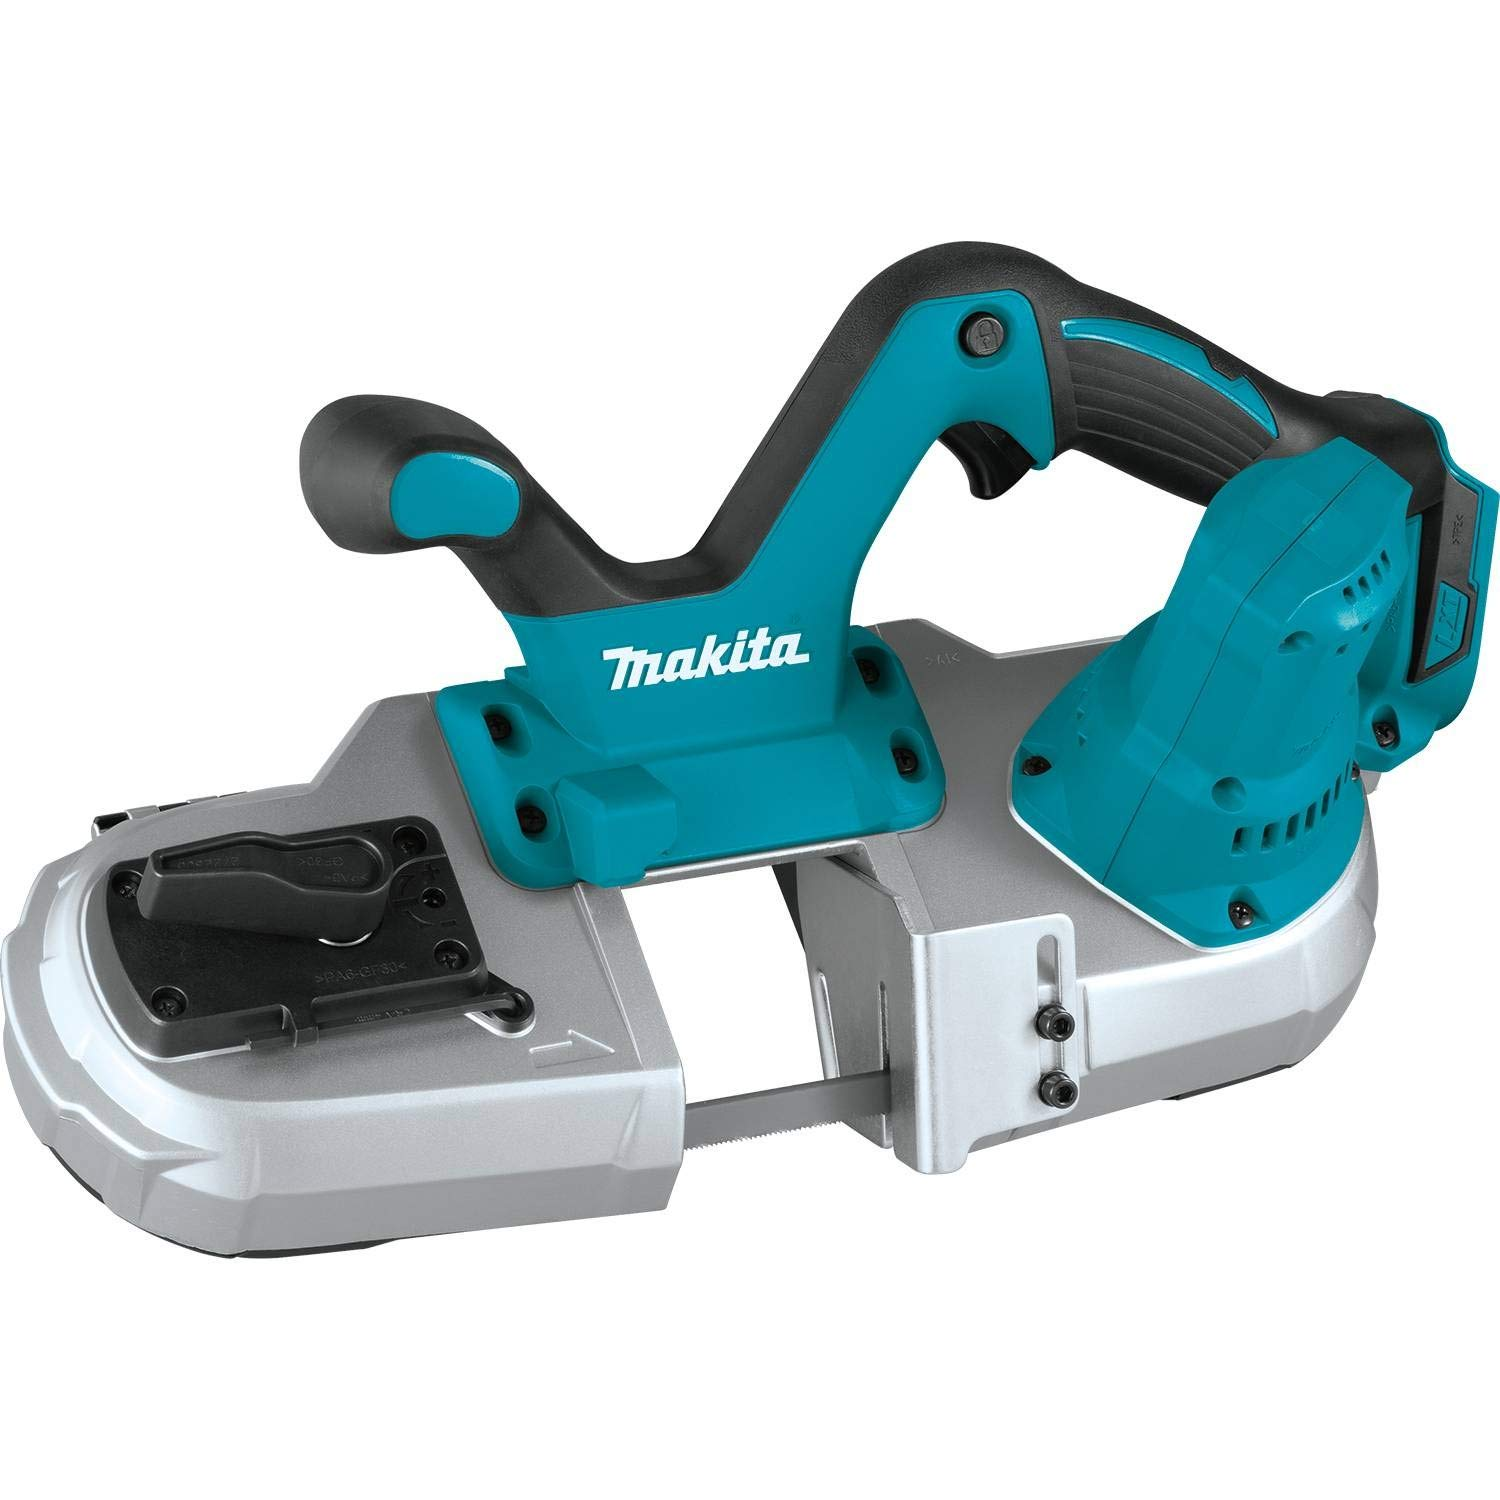 Makita XBP03Z 18V LXT Compact Band Saw, Tool Only by Makita (Image #1)